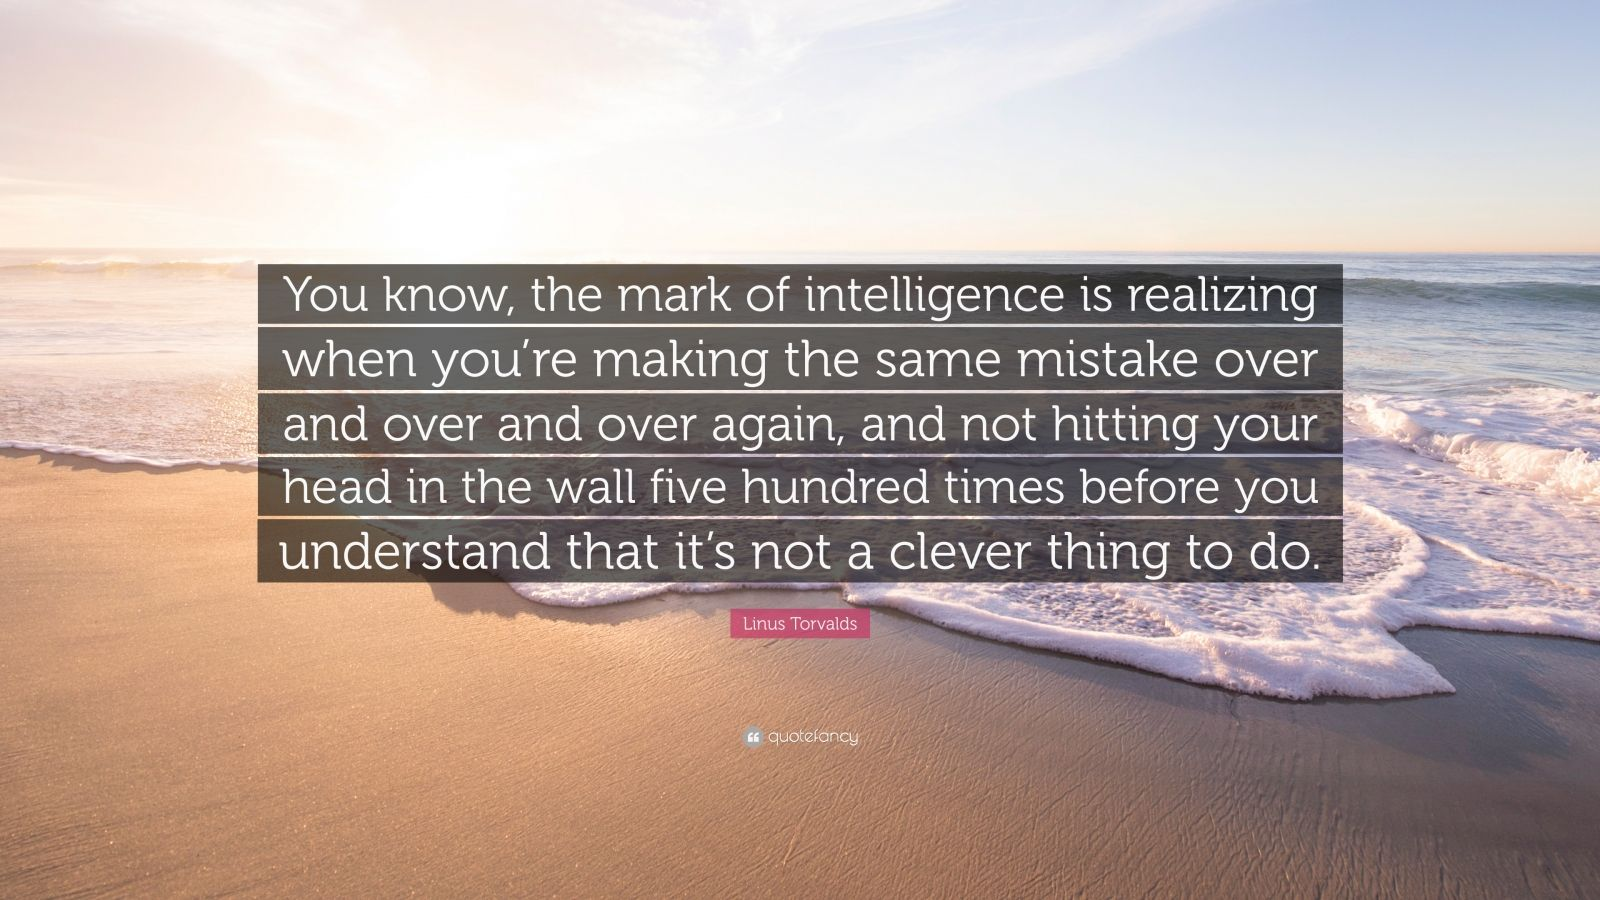 "Linus Torvalds Quote: ""You know, the mark of intelligence is realizing when you're making the same mistake over and over and over again, and not hitting your head in the wall five hundred times before you understand that it's not a clever thing to do."""